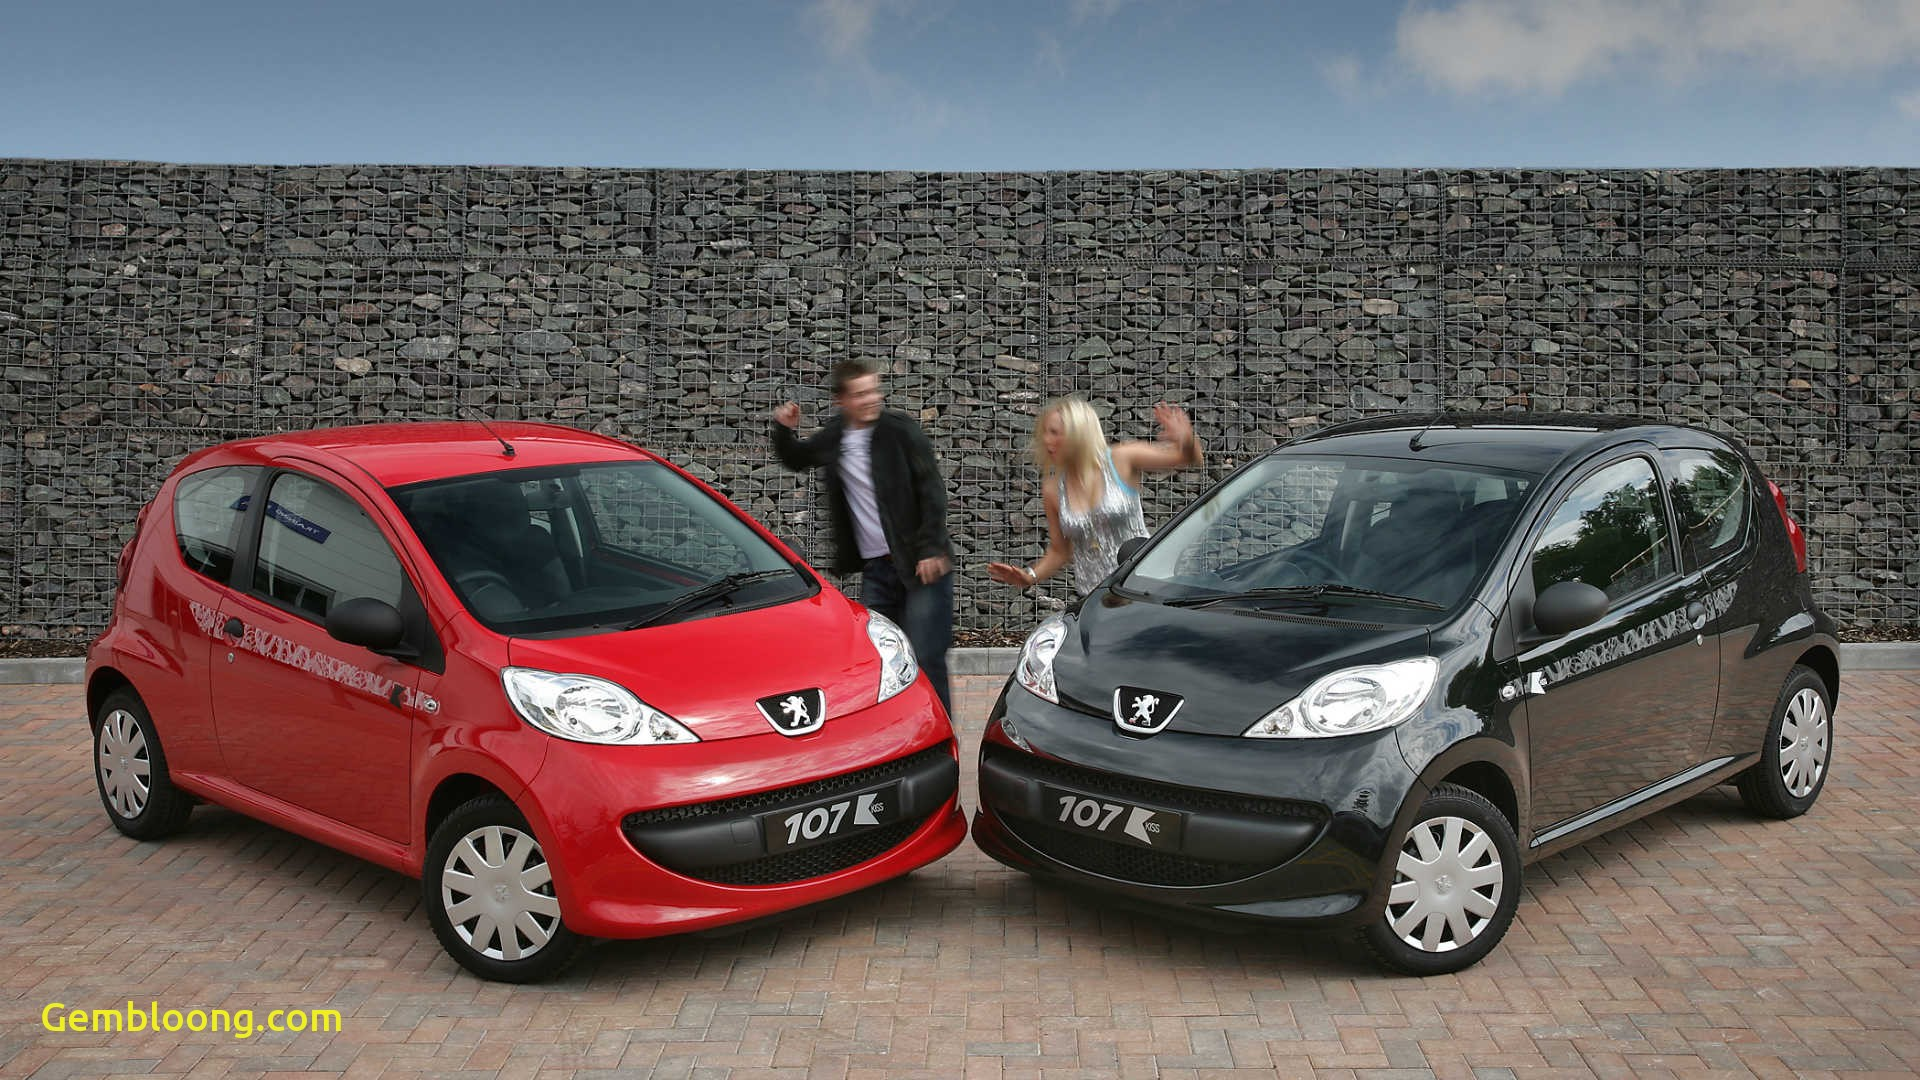 1.0 Cars for Sale Near Me Unique the 10 Cheapest Cars for 17 Year Olds to Insure